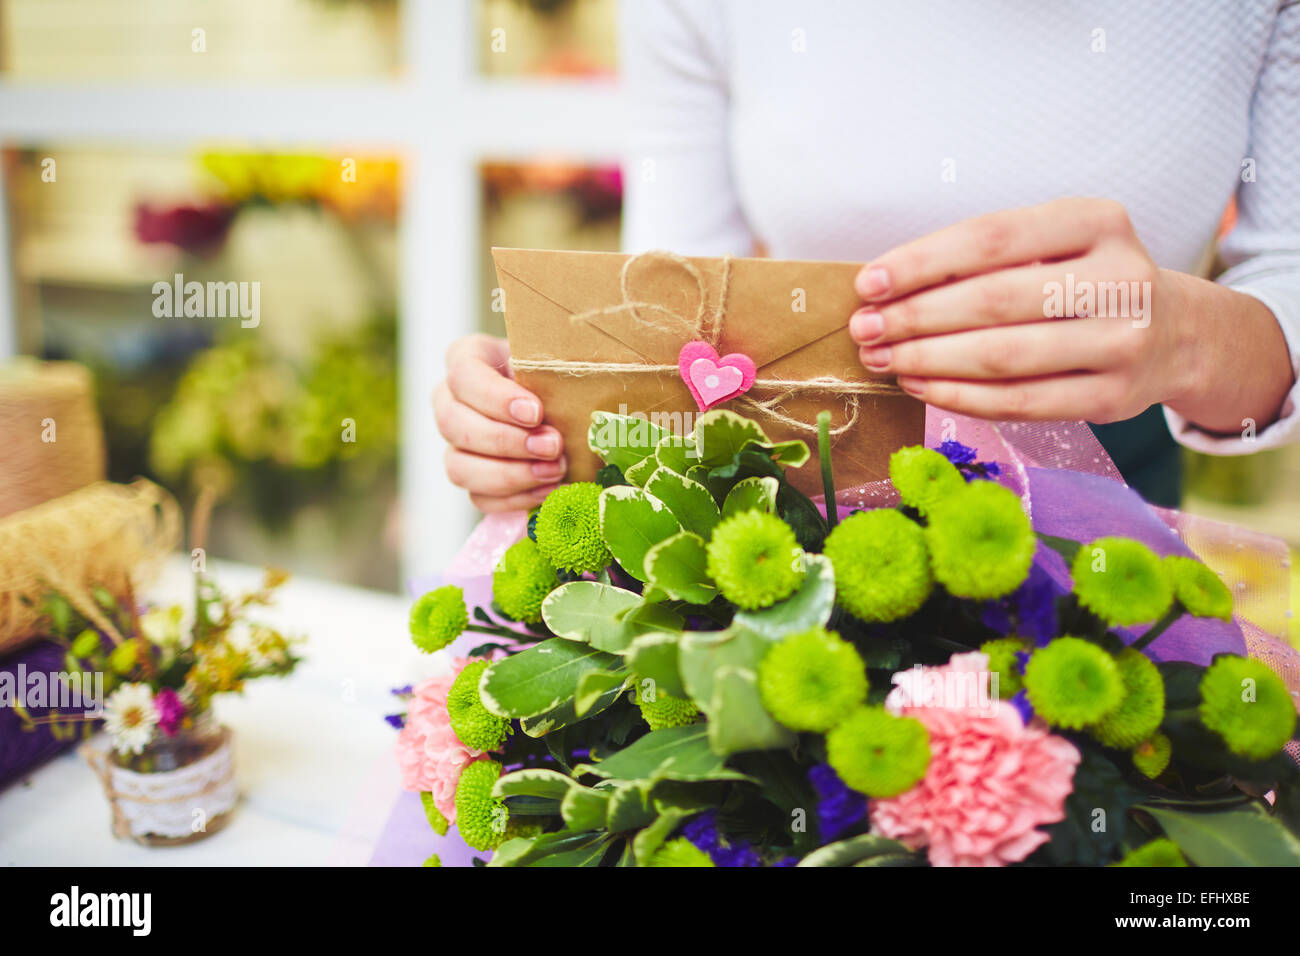 Female hands with love message putting it in floral bouquet - Stock Image